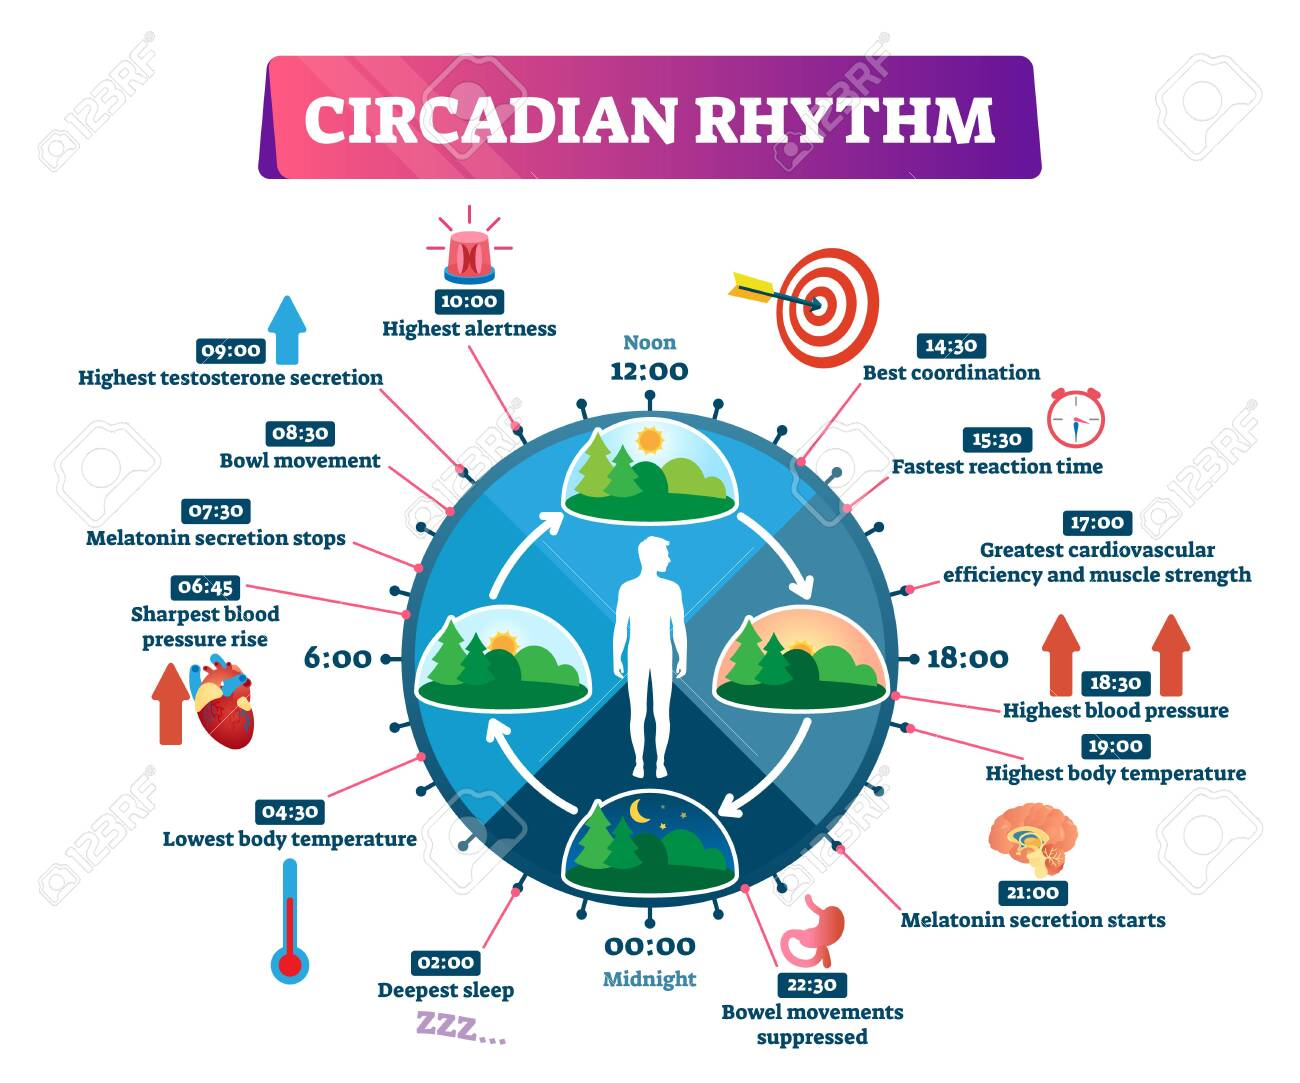 Circadian rhythm vector illustration. Labeled educational day cycle scheme. Daily human body inner regulation schedule. Natural sleep-wake biological process explanation and chronobiology infographic. - 135230932